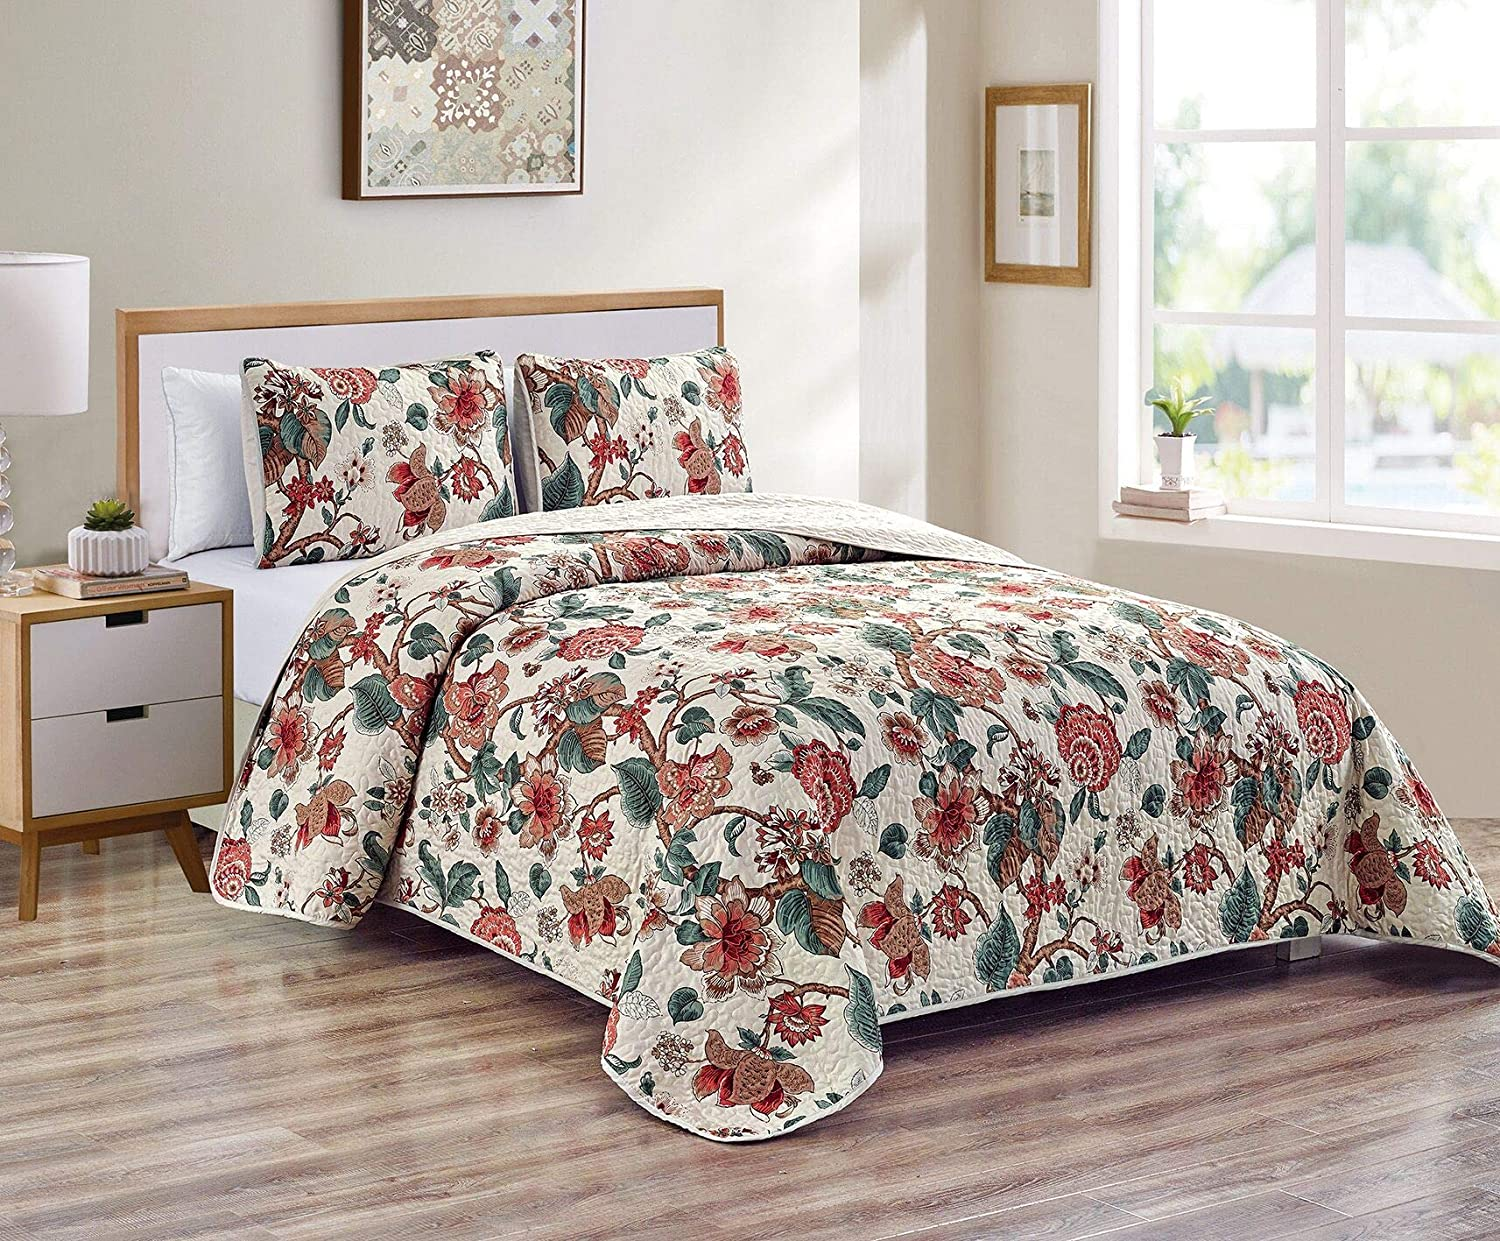 Better Home Style 3 Piece Multicolor Luxury Lush Soft Floral Flowers Paisley Printed Design Quilt Coverlet Bedspread Oversized Bed Cover Set # 2435 (Full/Queen)